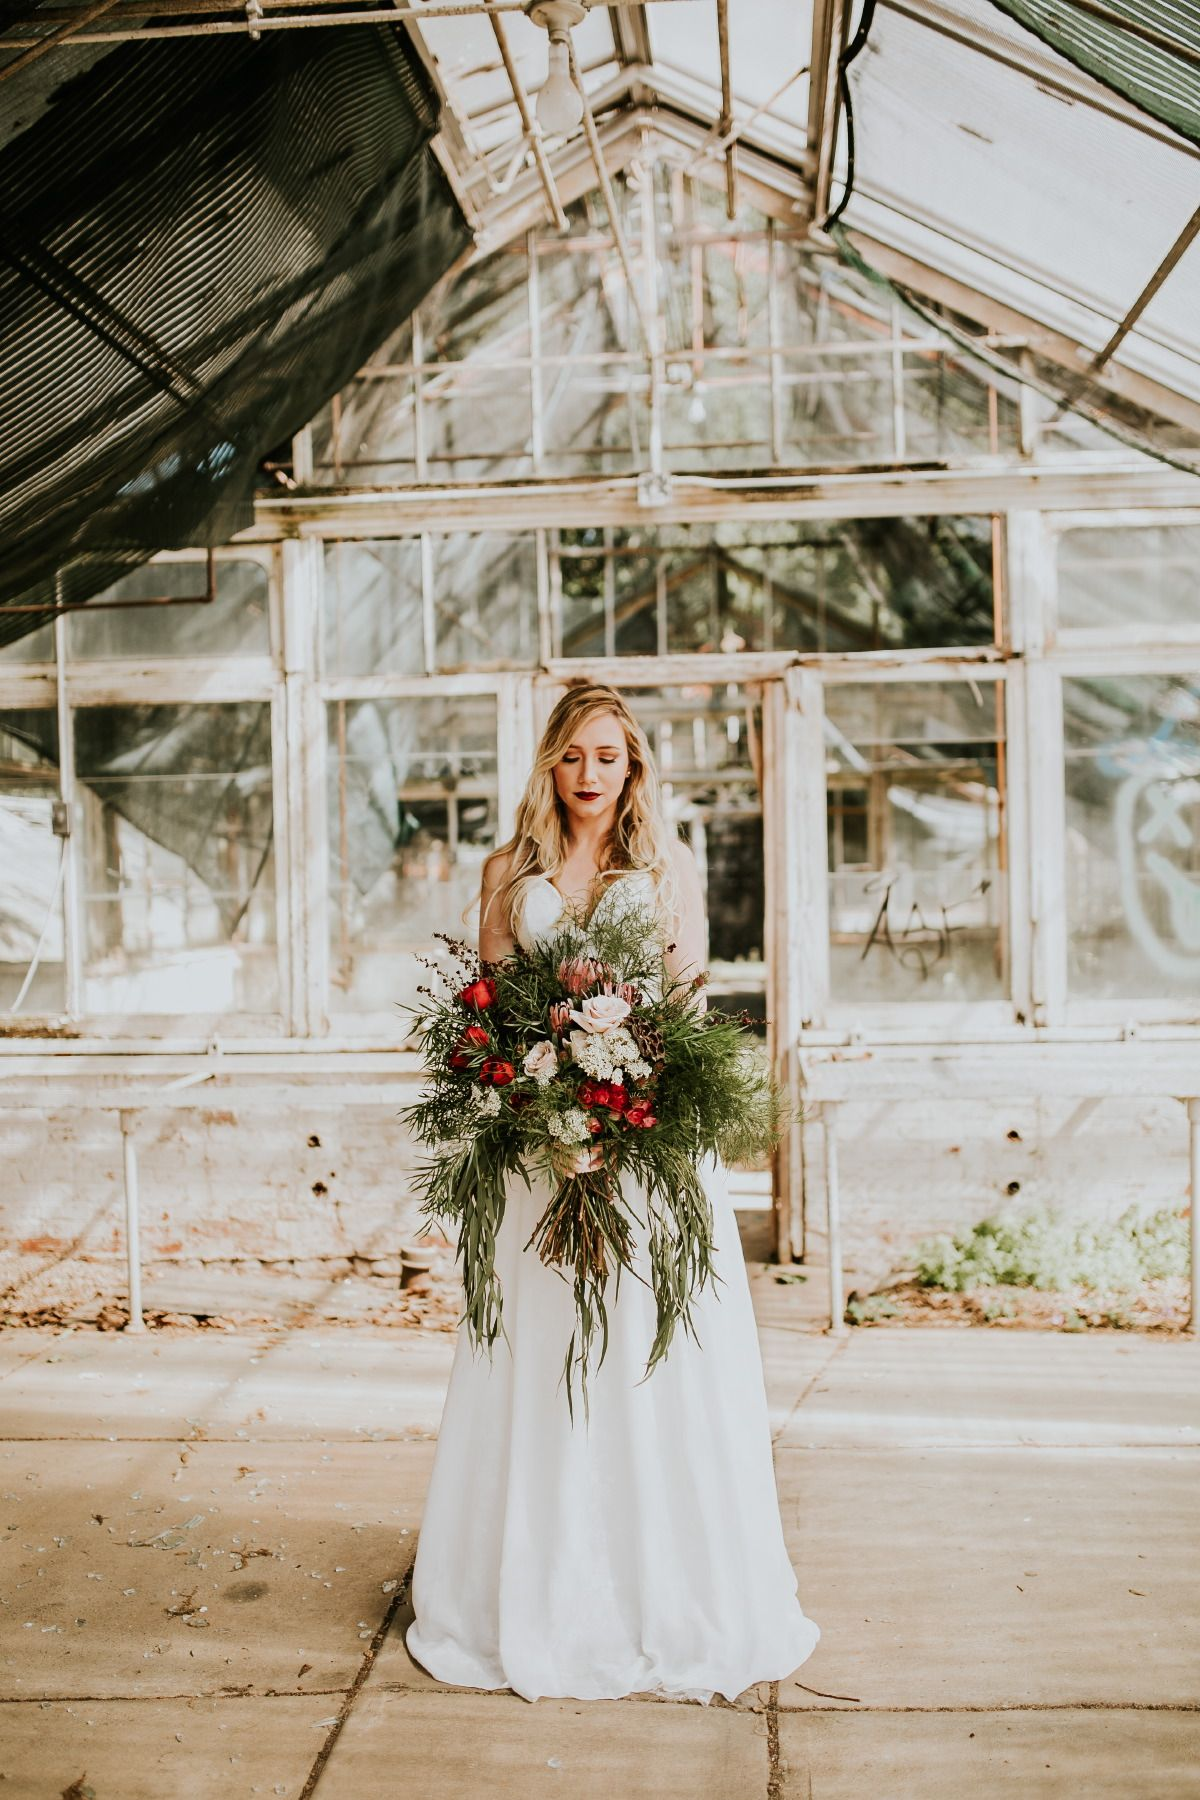 A few months ago I decided to put together a styled shoot. I found an abandoned greenhouse in Atlanta, gathered some amazing vendors and off we went. Flowers: Maria Schendzelos | MUA: Danina Nicole | Video: Yellow Bird Visuals | Scroll: Esther Clark | Invitation: Meg Brooks